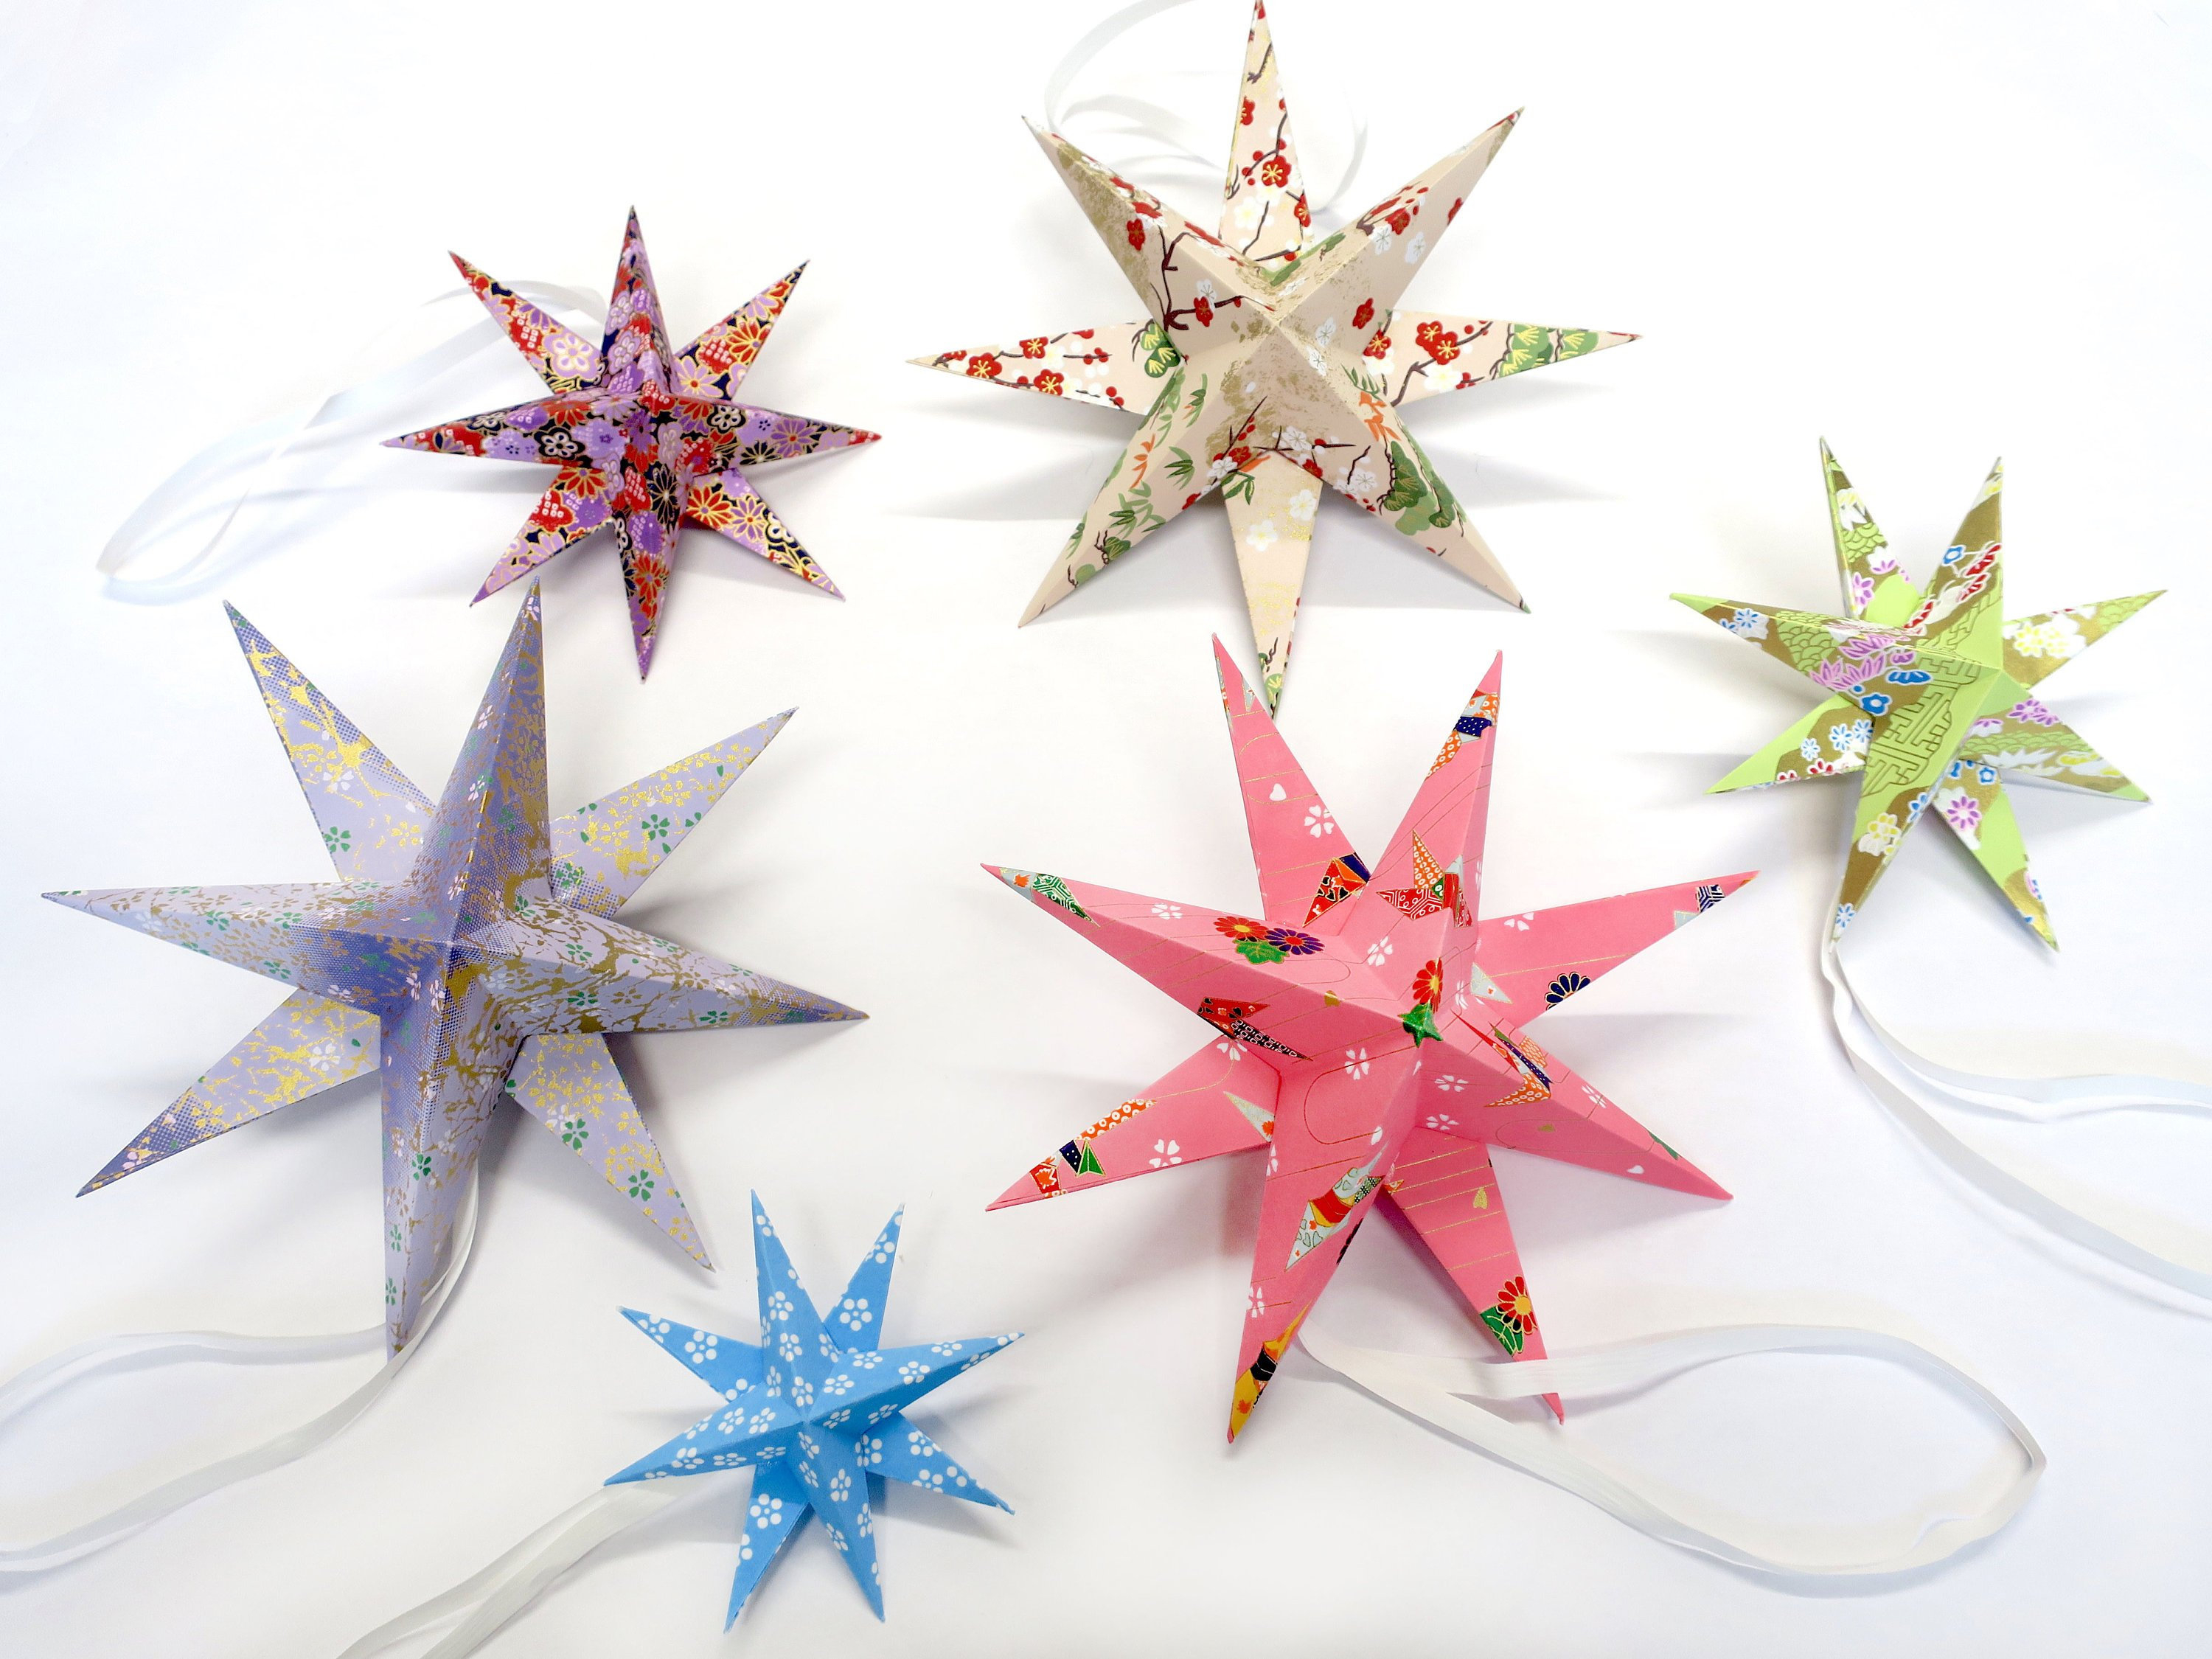 Origami Star Decorations 6 Handmade Origami Stars Hanging Decoration Homemade Gift Idea Home Decoration 3d Origami Japanese Crane Floral Nursery Mobile